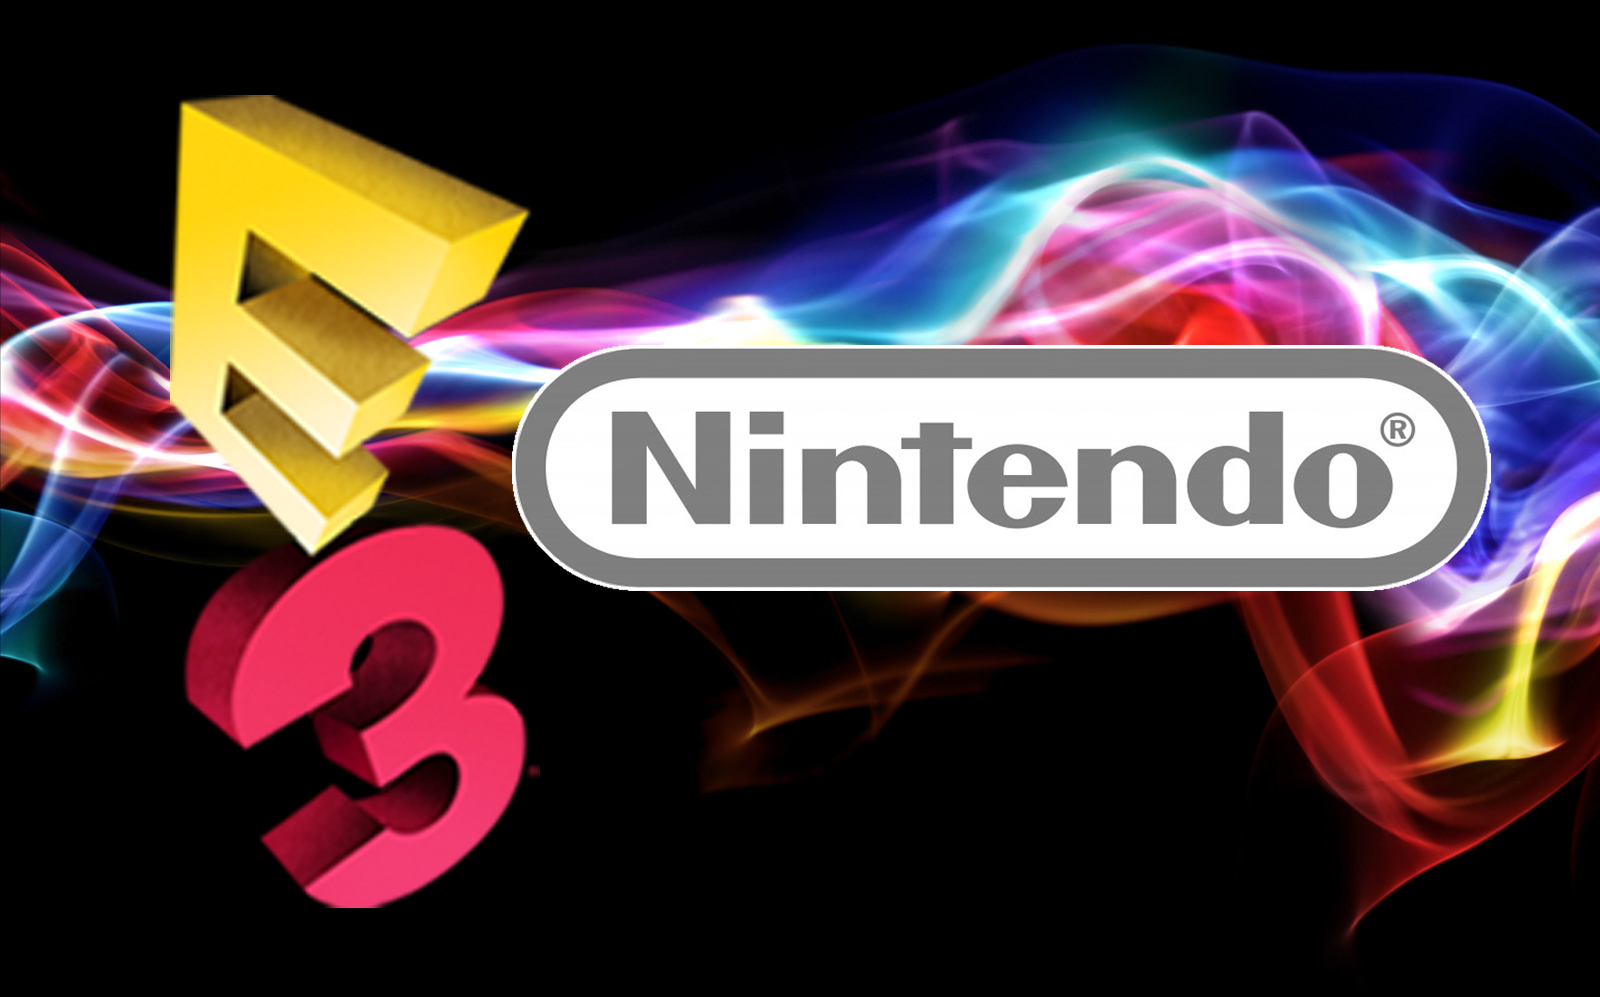 Nintendo E3 Analyst Briefing transcript